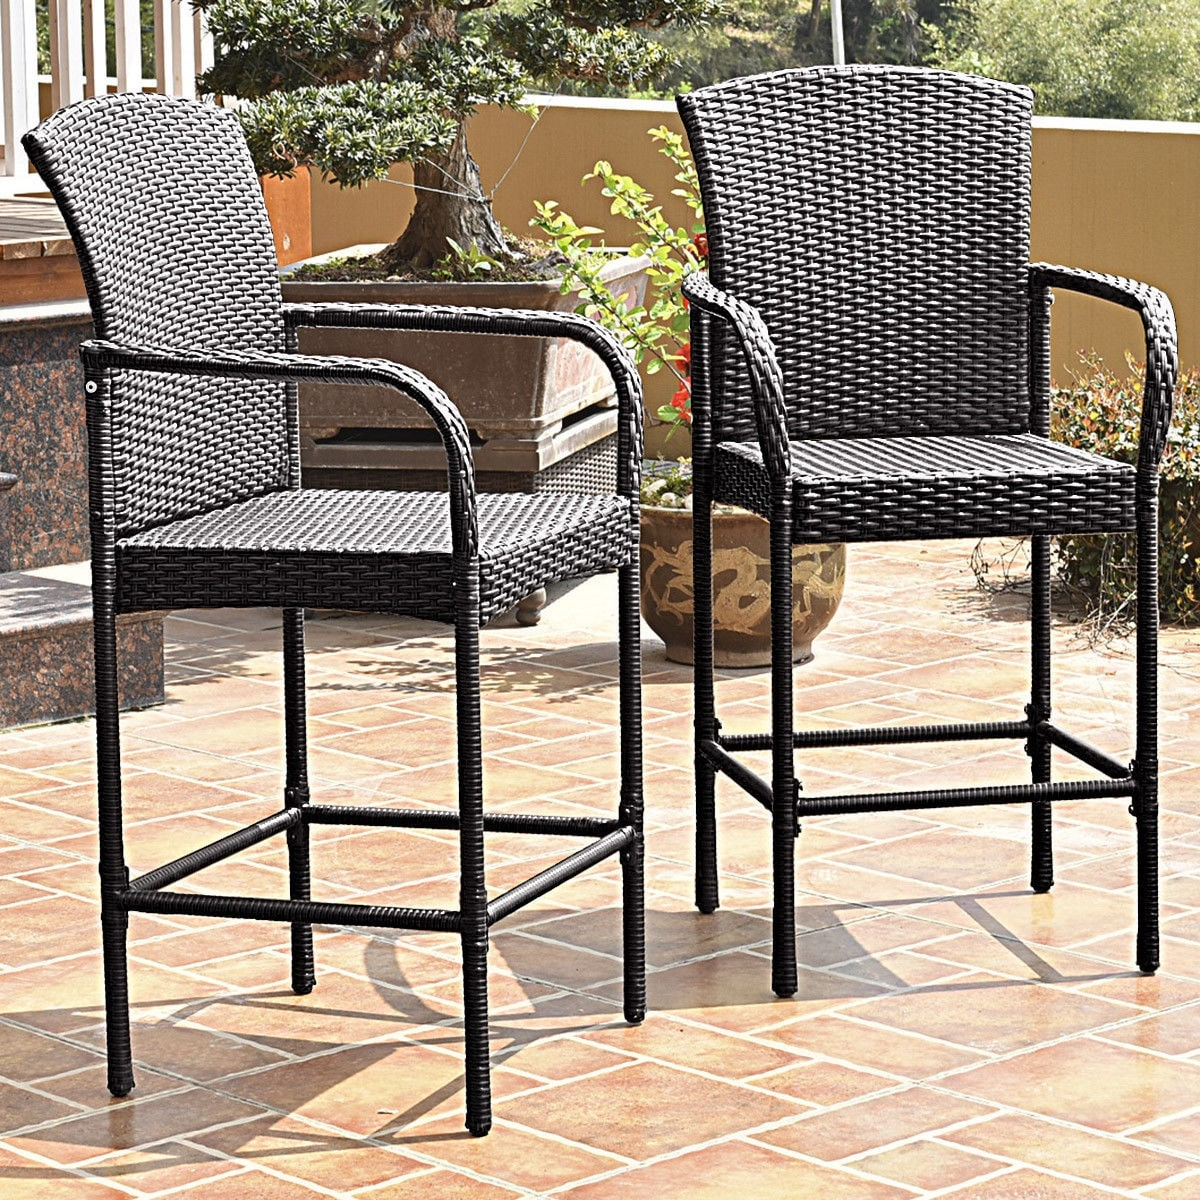 Costway 2pcs Rattan Wicker Bar Stool Dining High Counter Chair Patio Furniture Armrest